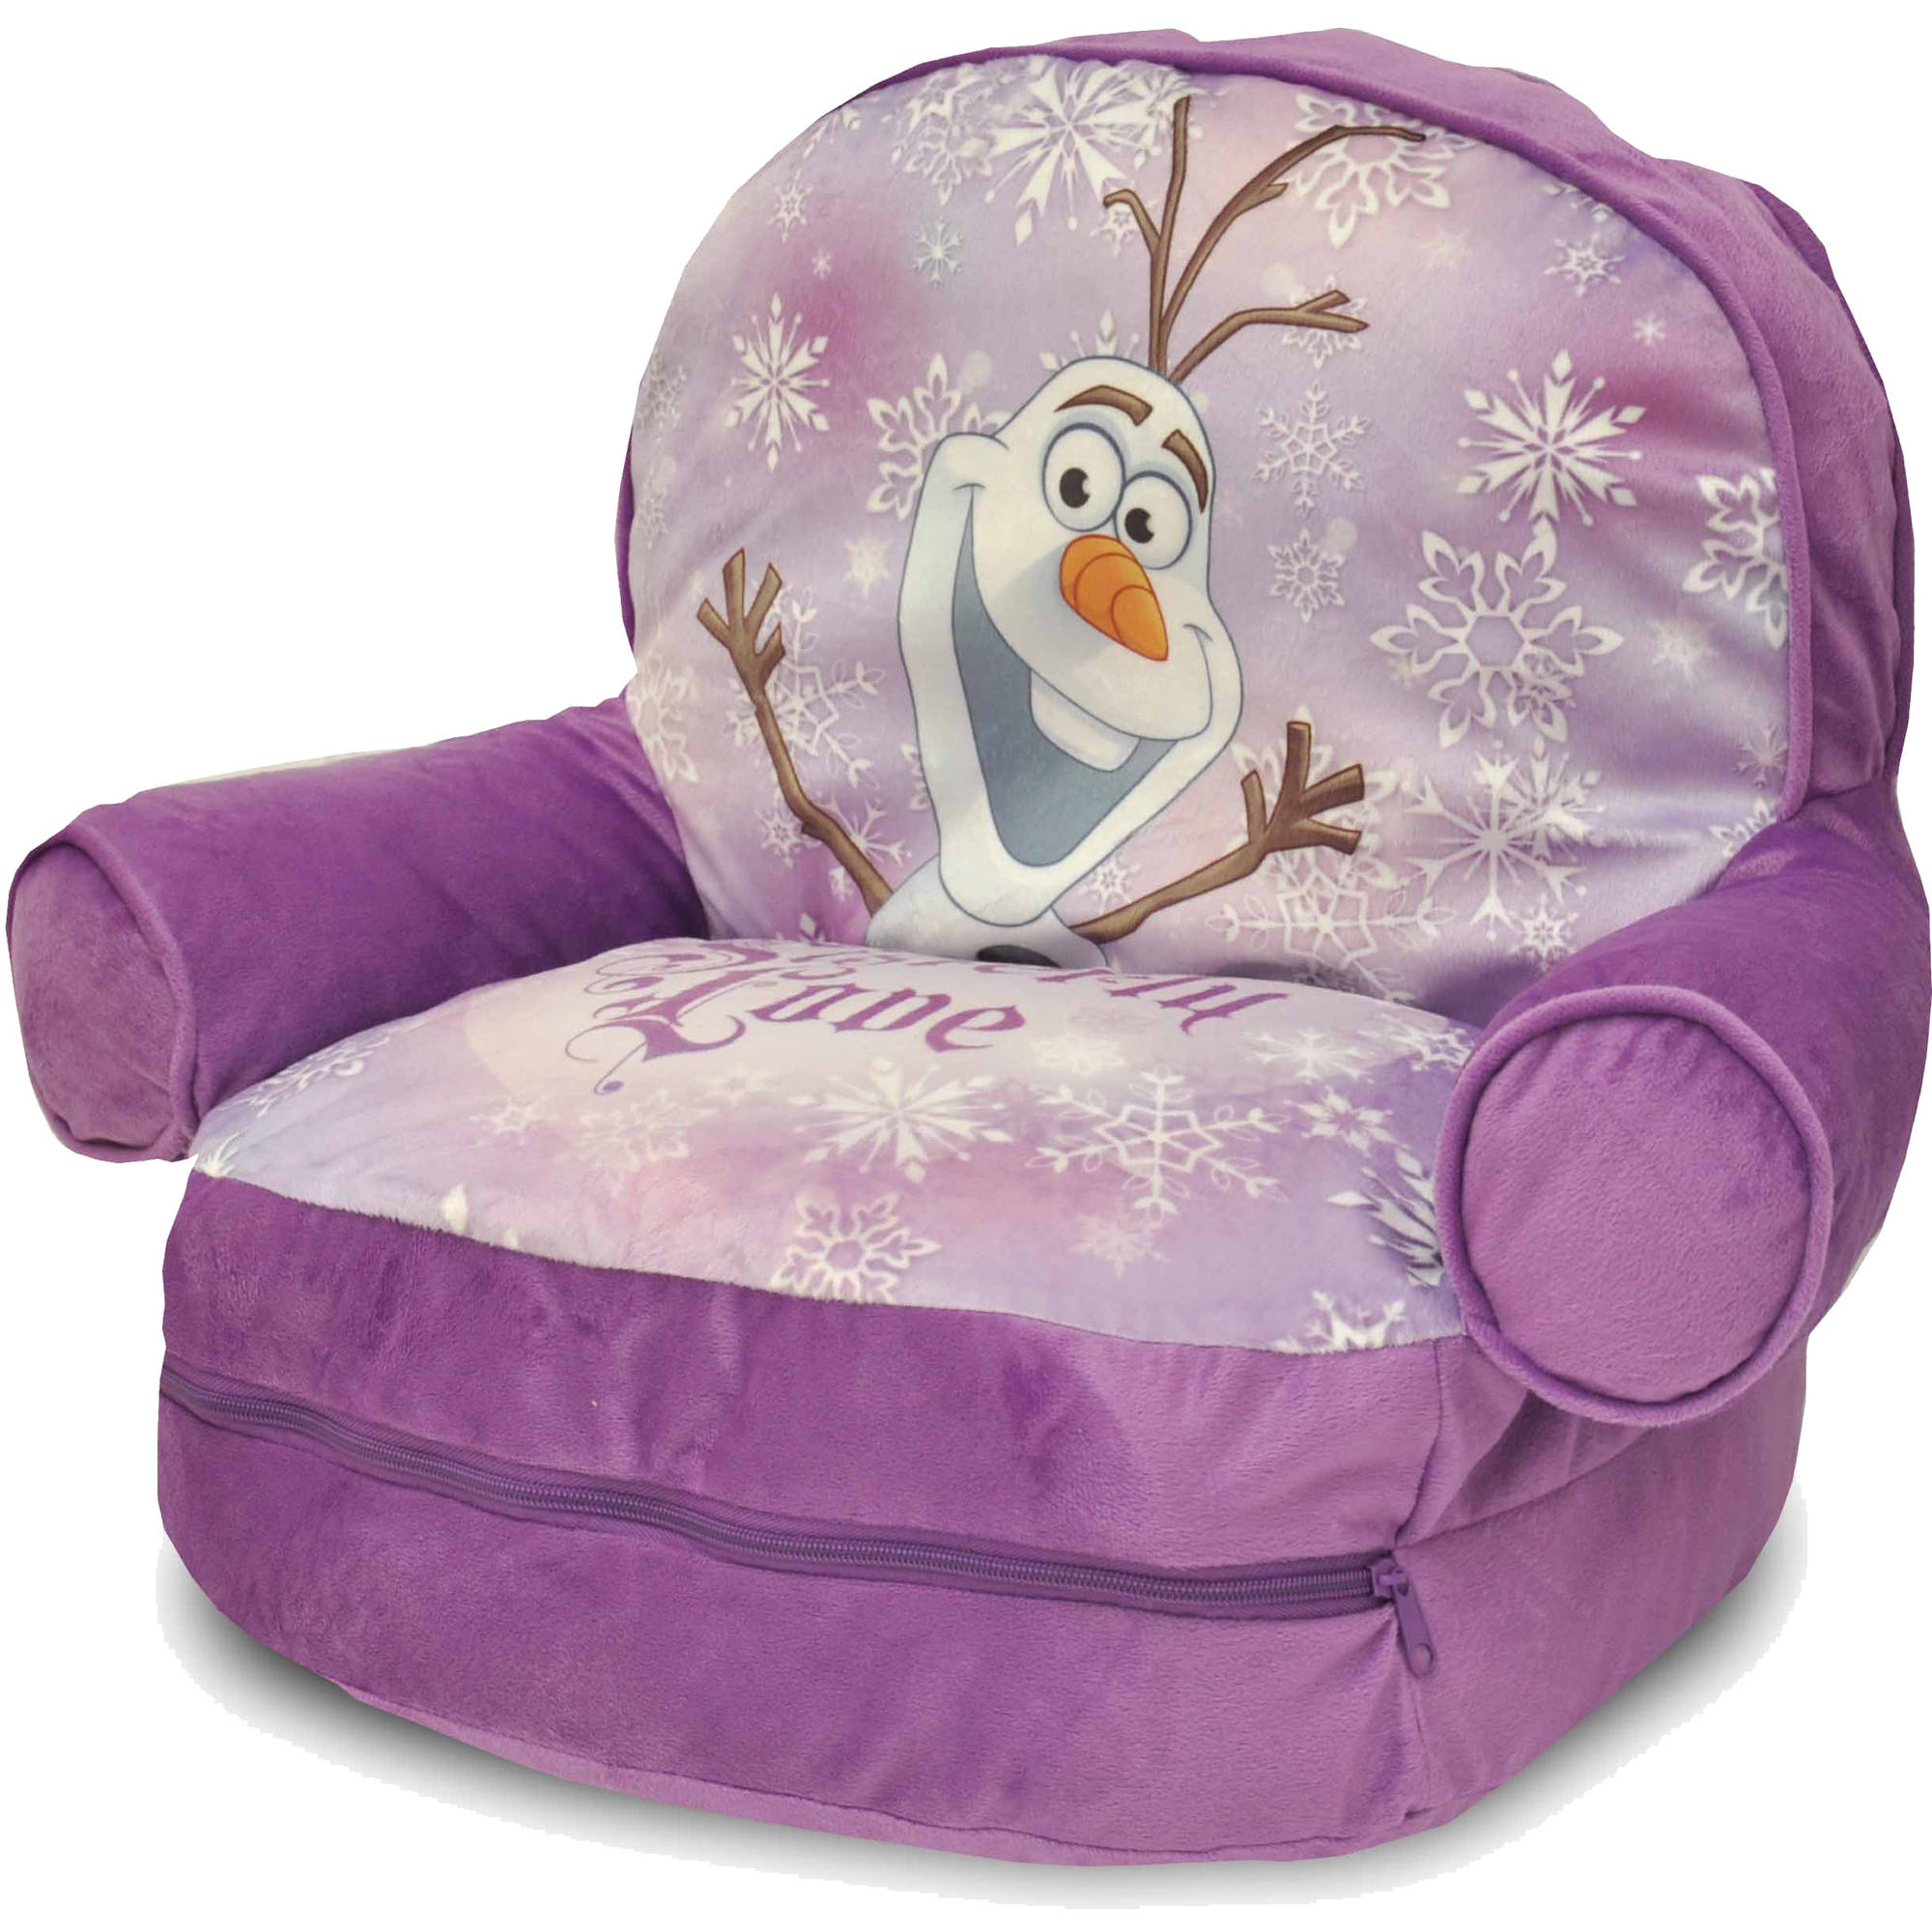 Disney Frozen Bean Bag with BONUS Slumber Bag Walmart